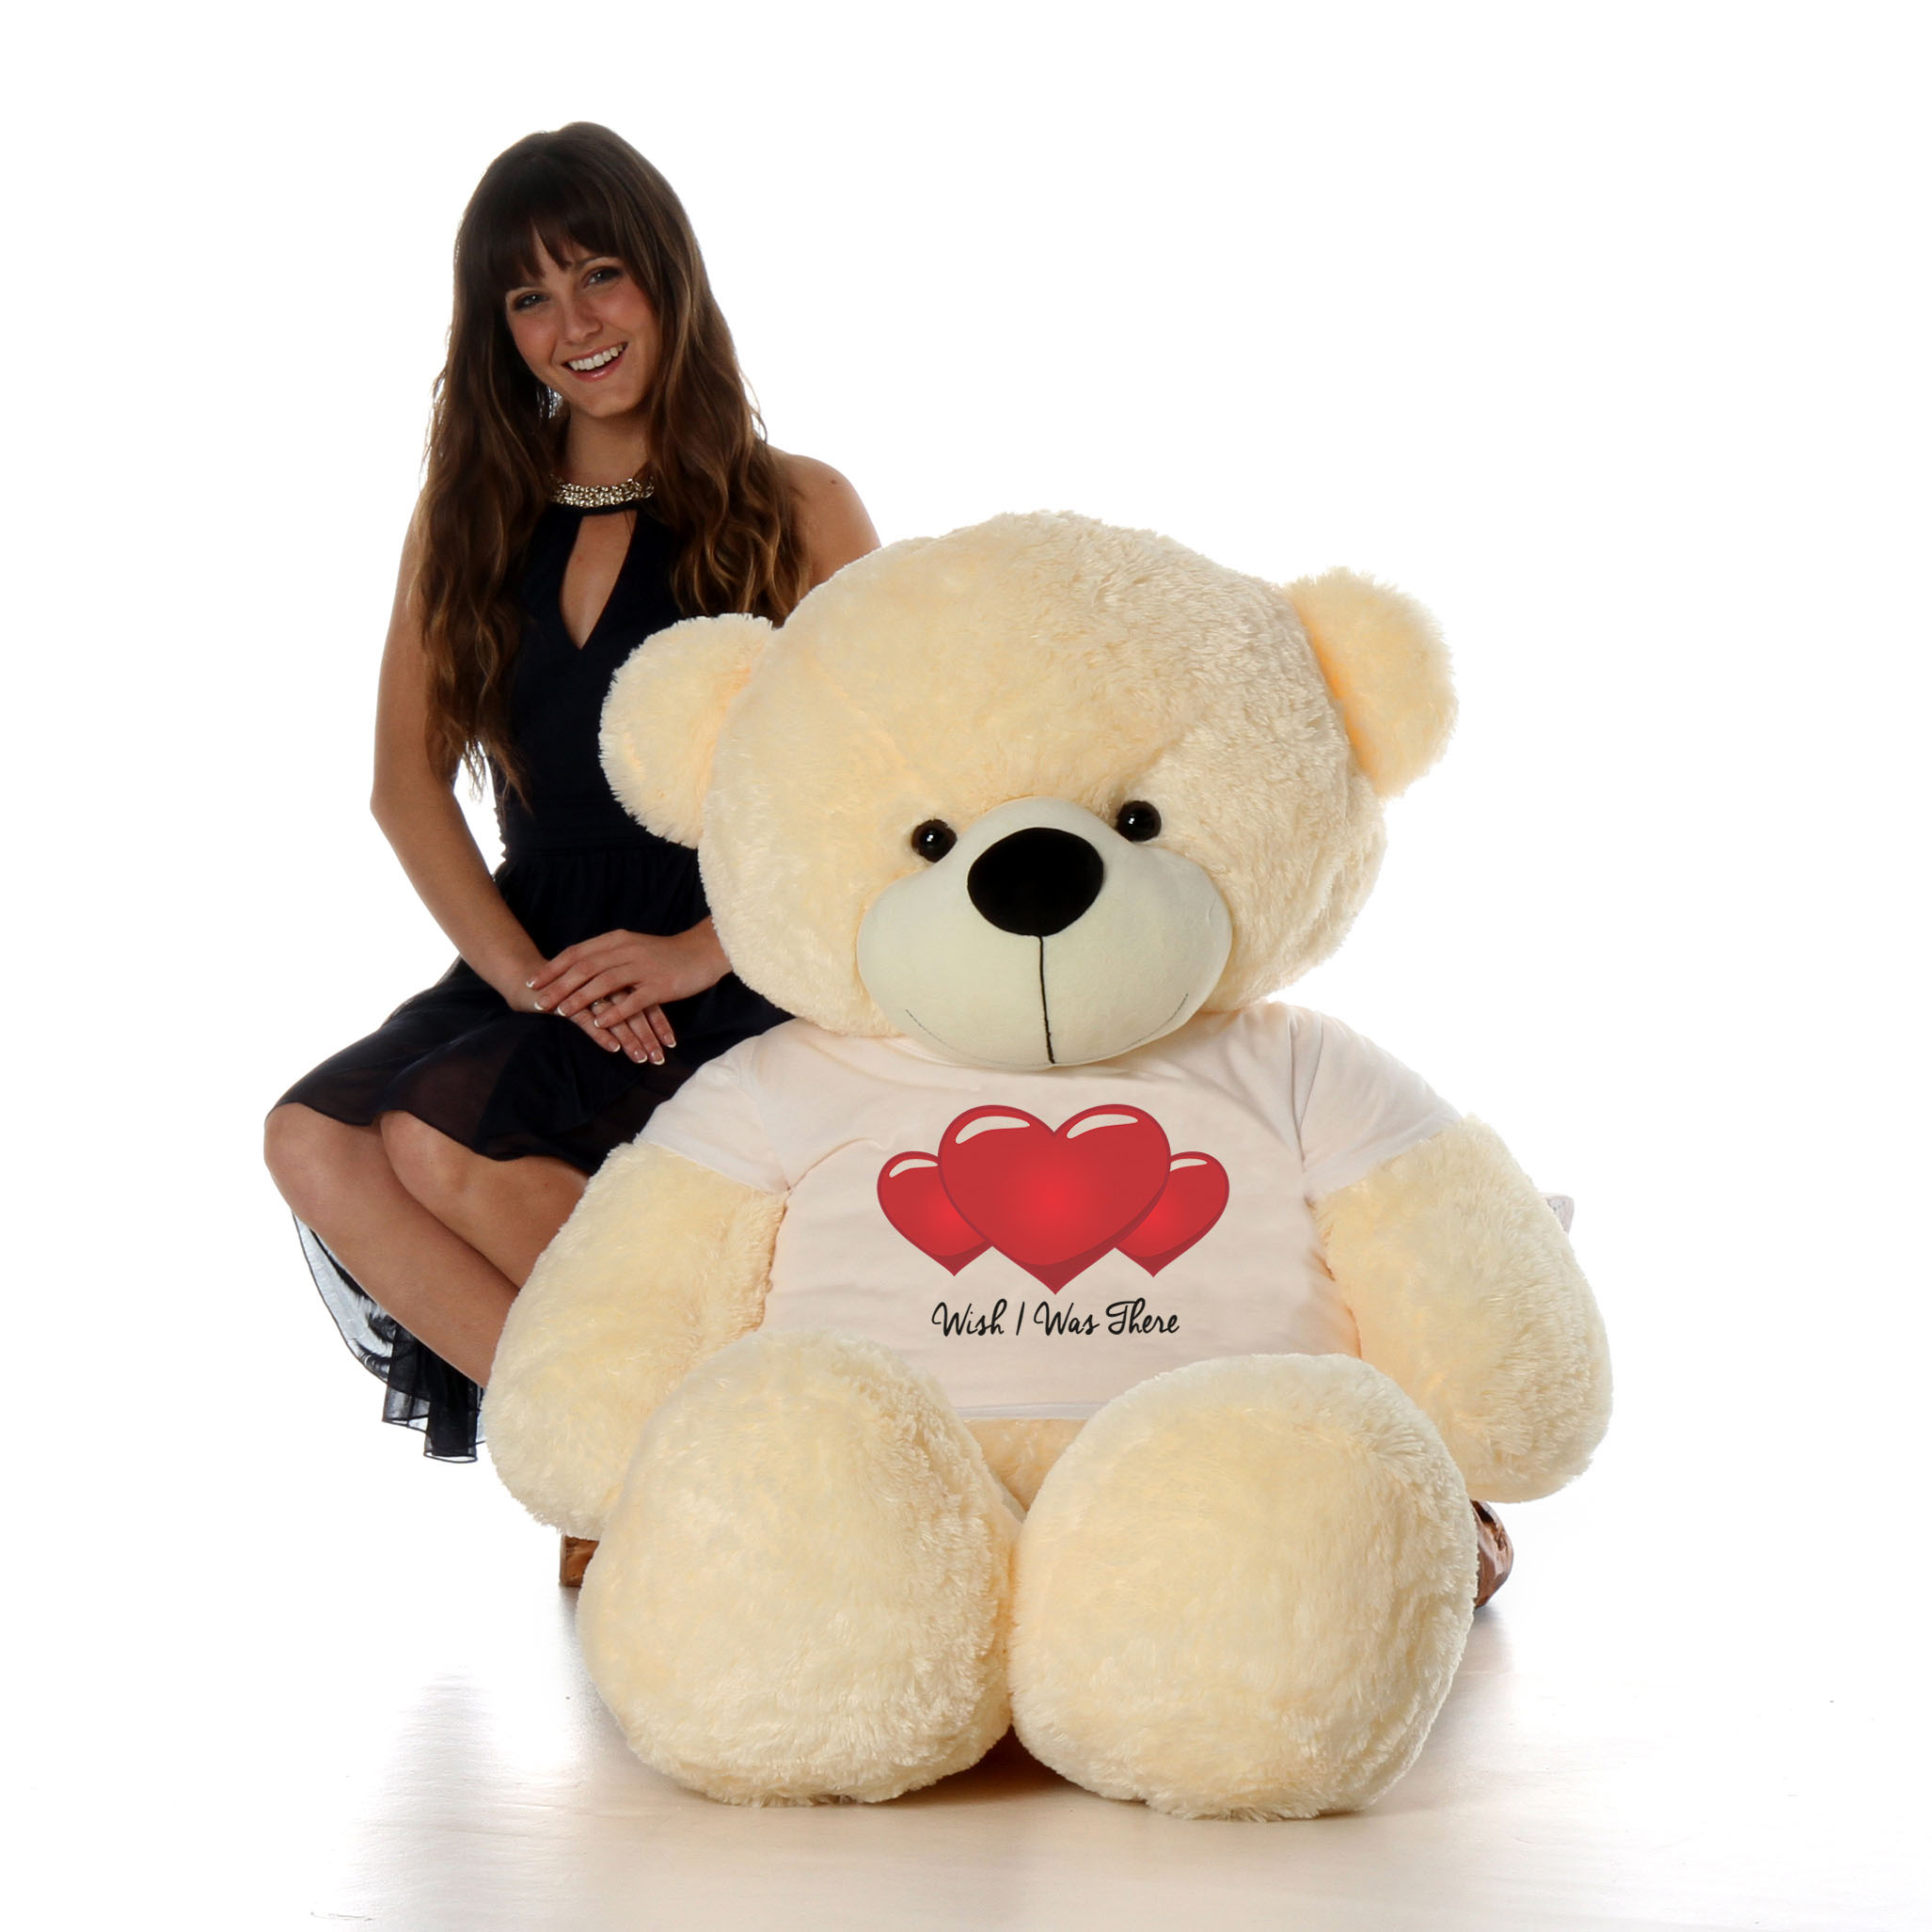 5ft-cozy-cuddles-vanilla-cream-giant-teddy-in-wish-i-was-there-t-shirt.jpg